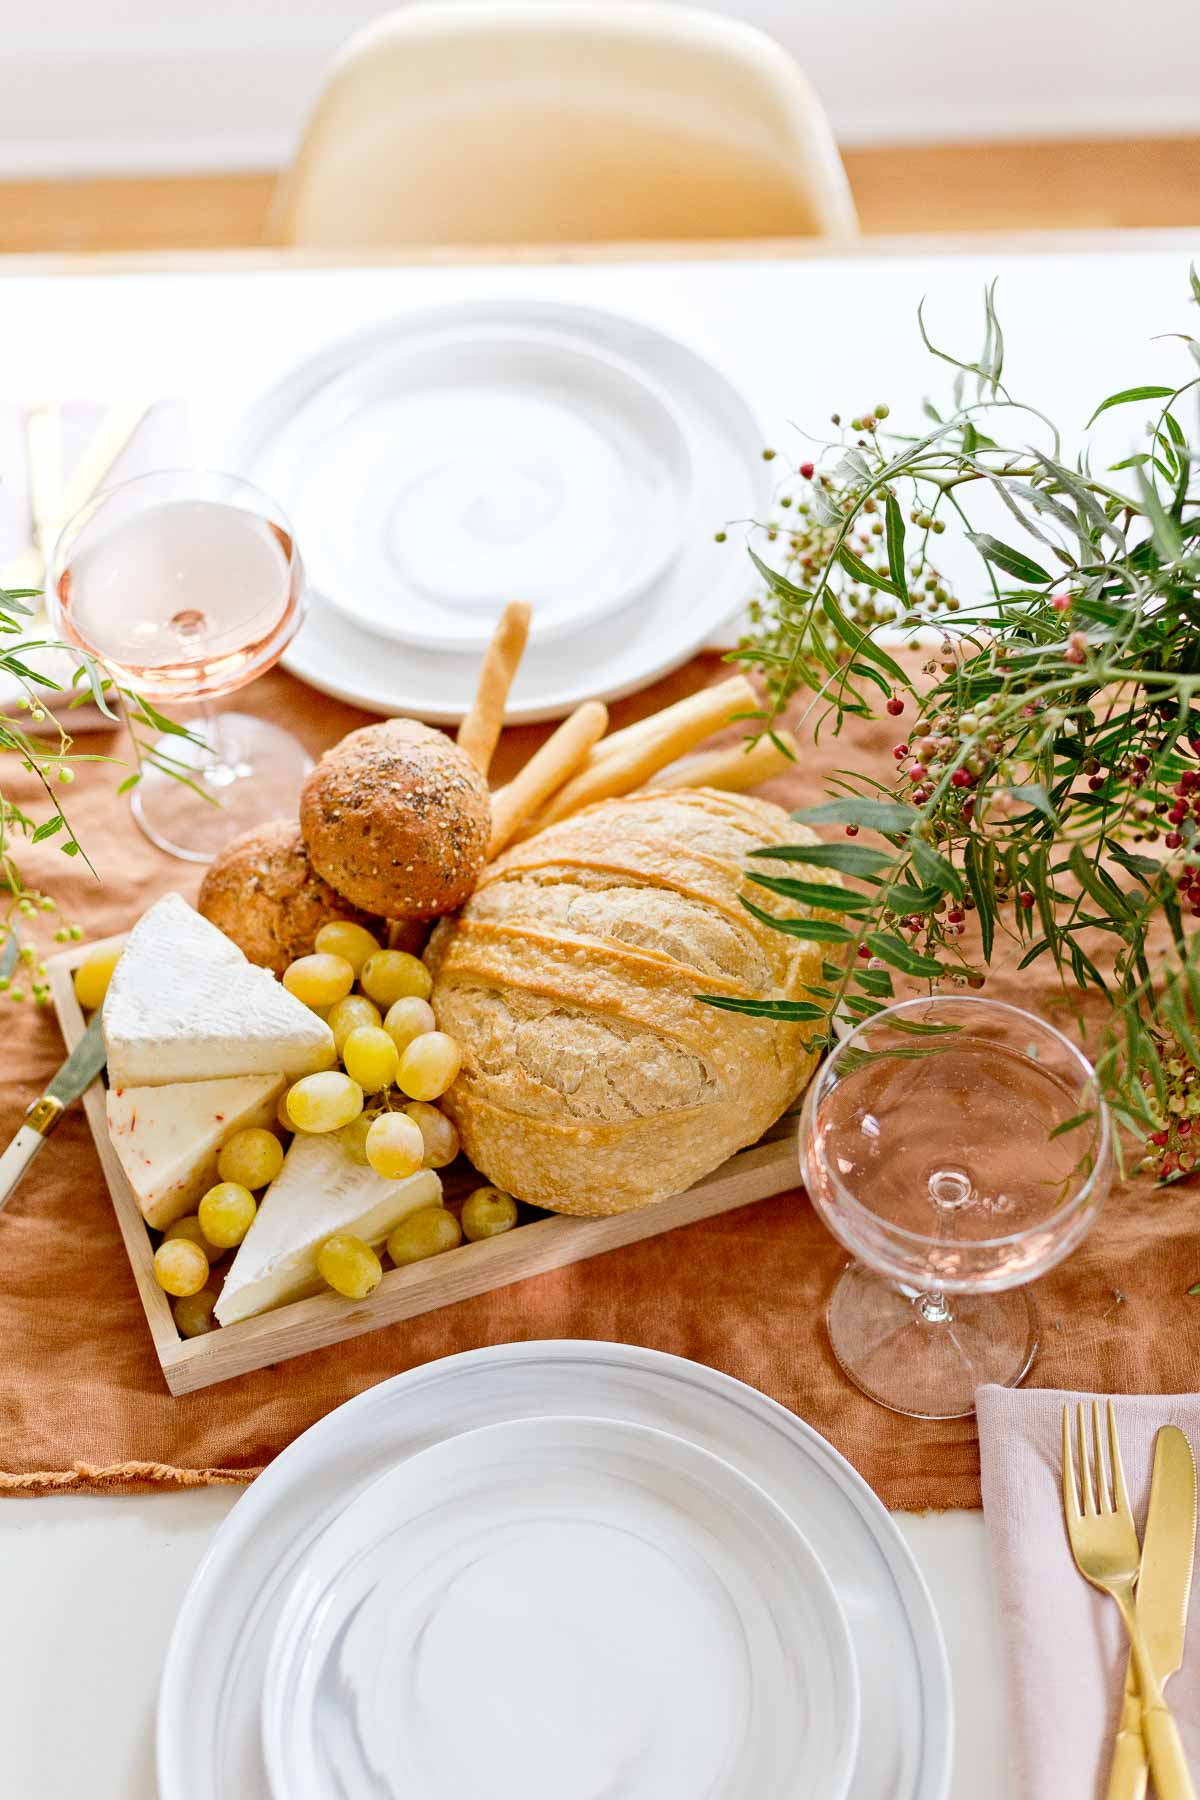 Bread and cheese tray with grapes and wine